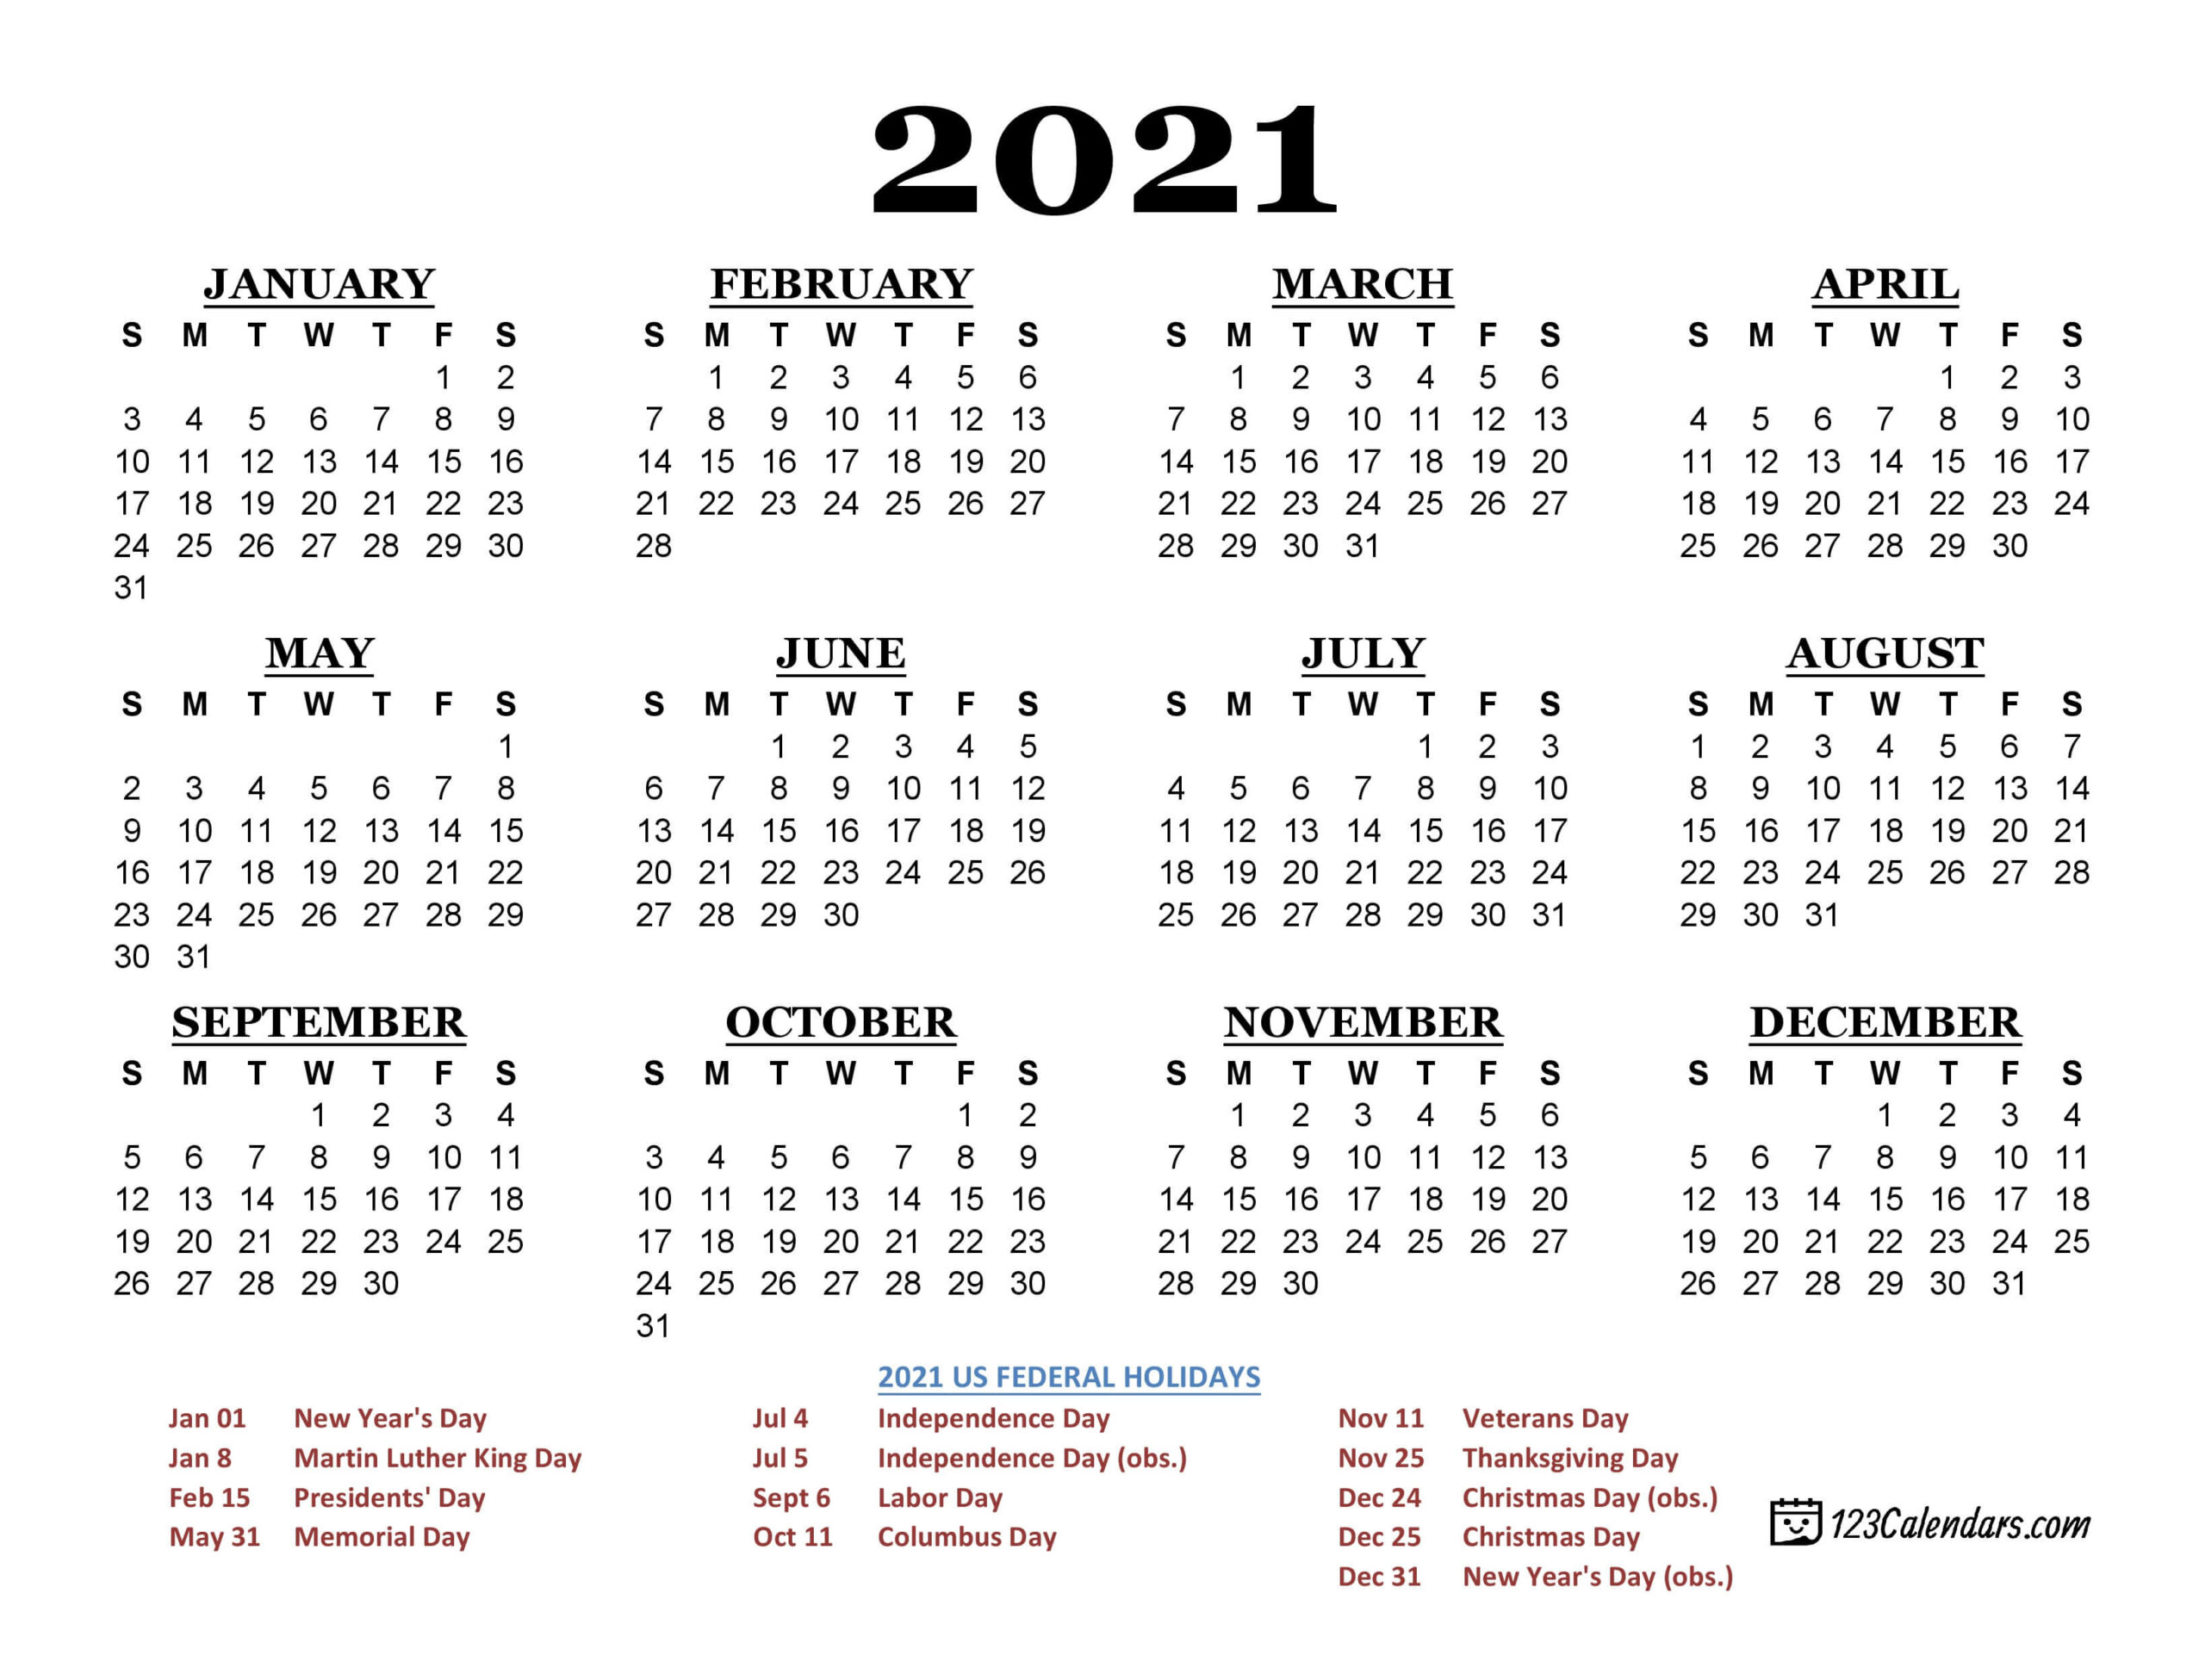 2021 Calendar With Federal Holidays Printable